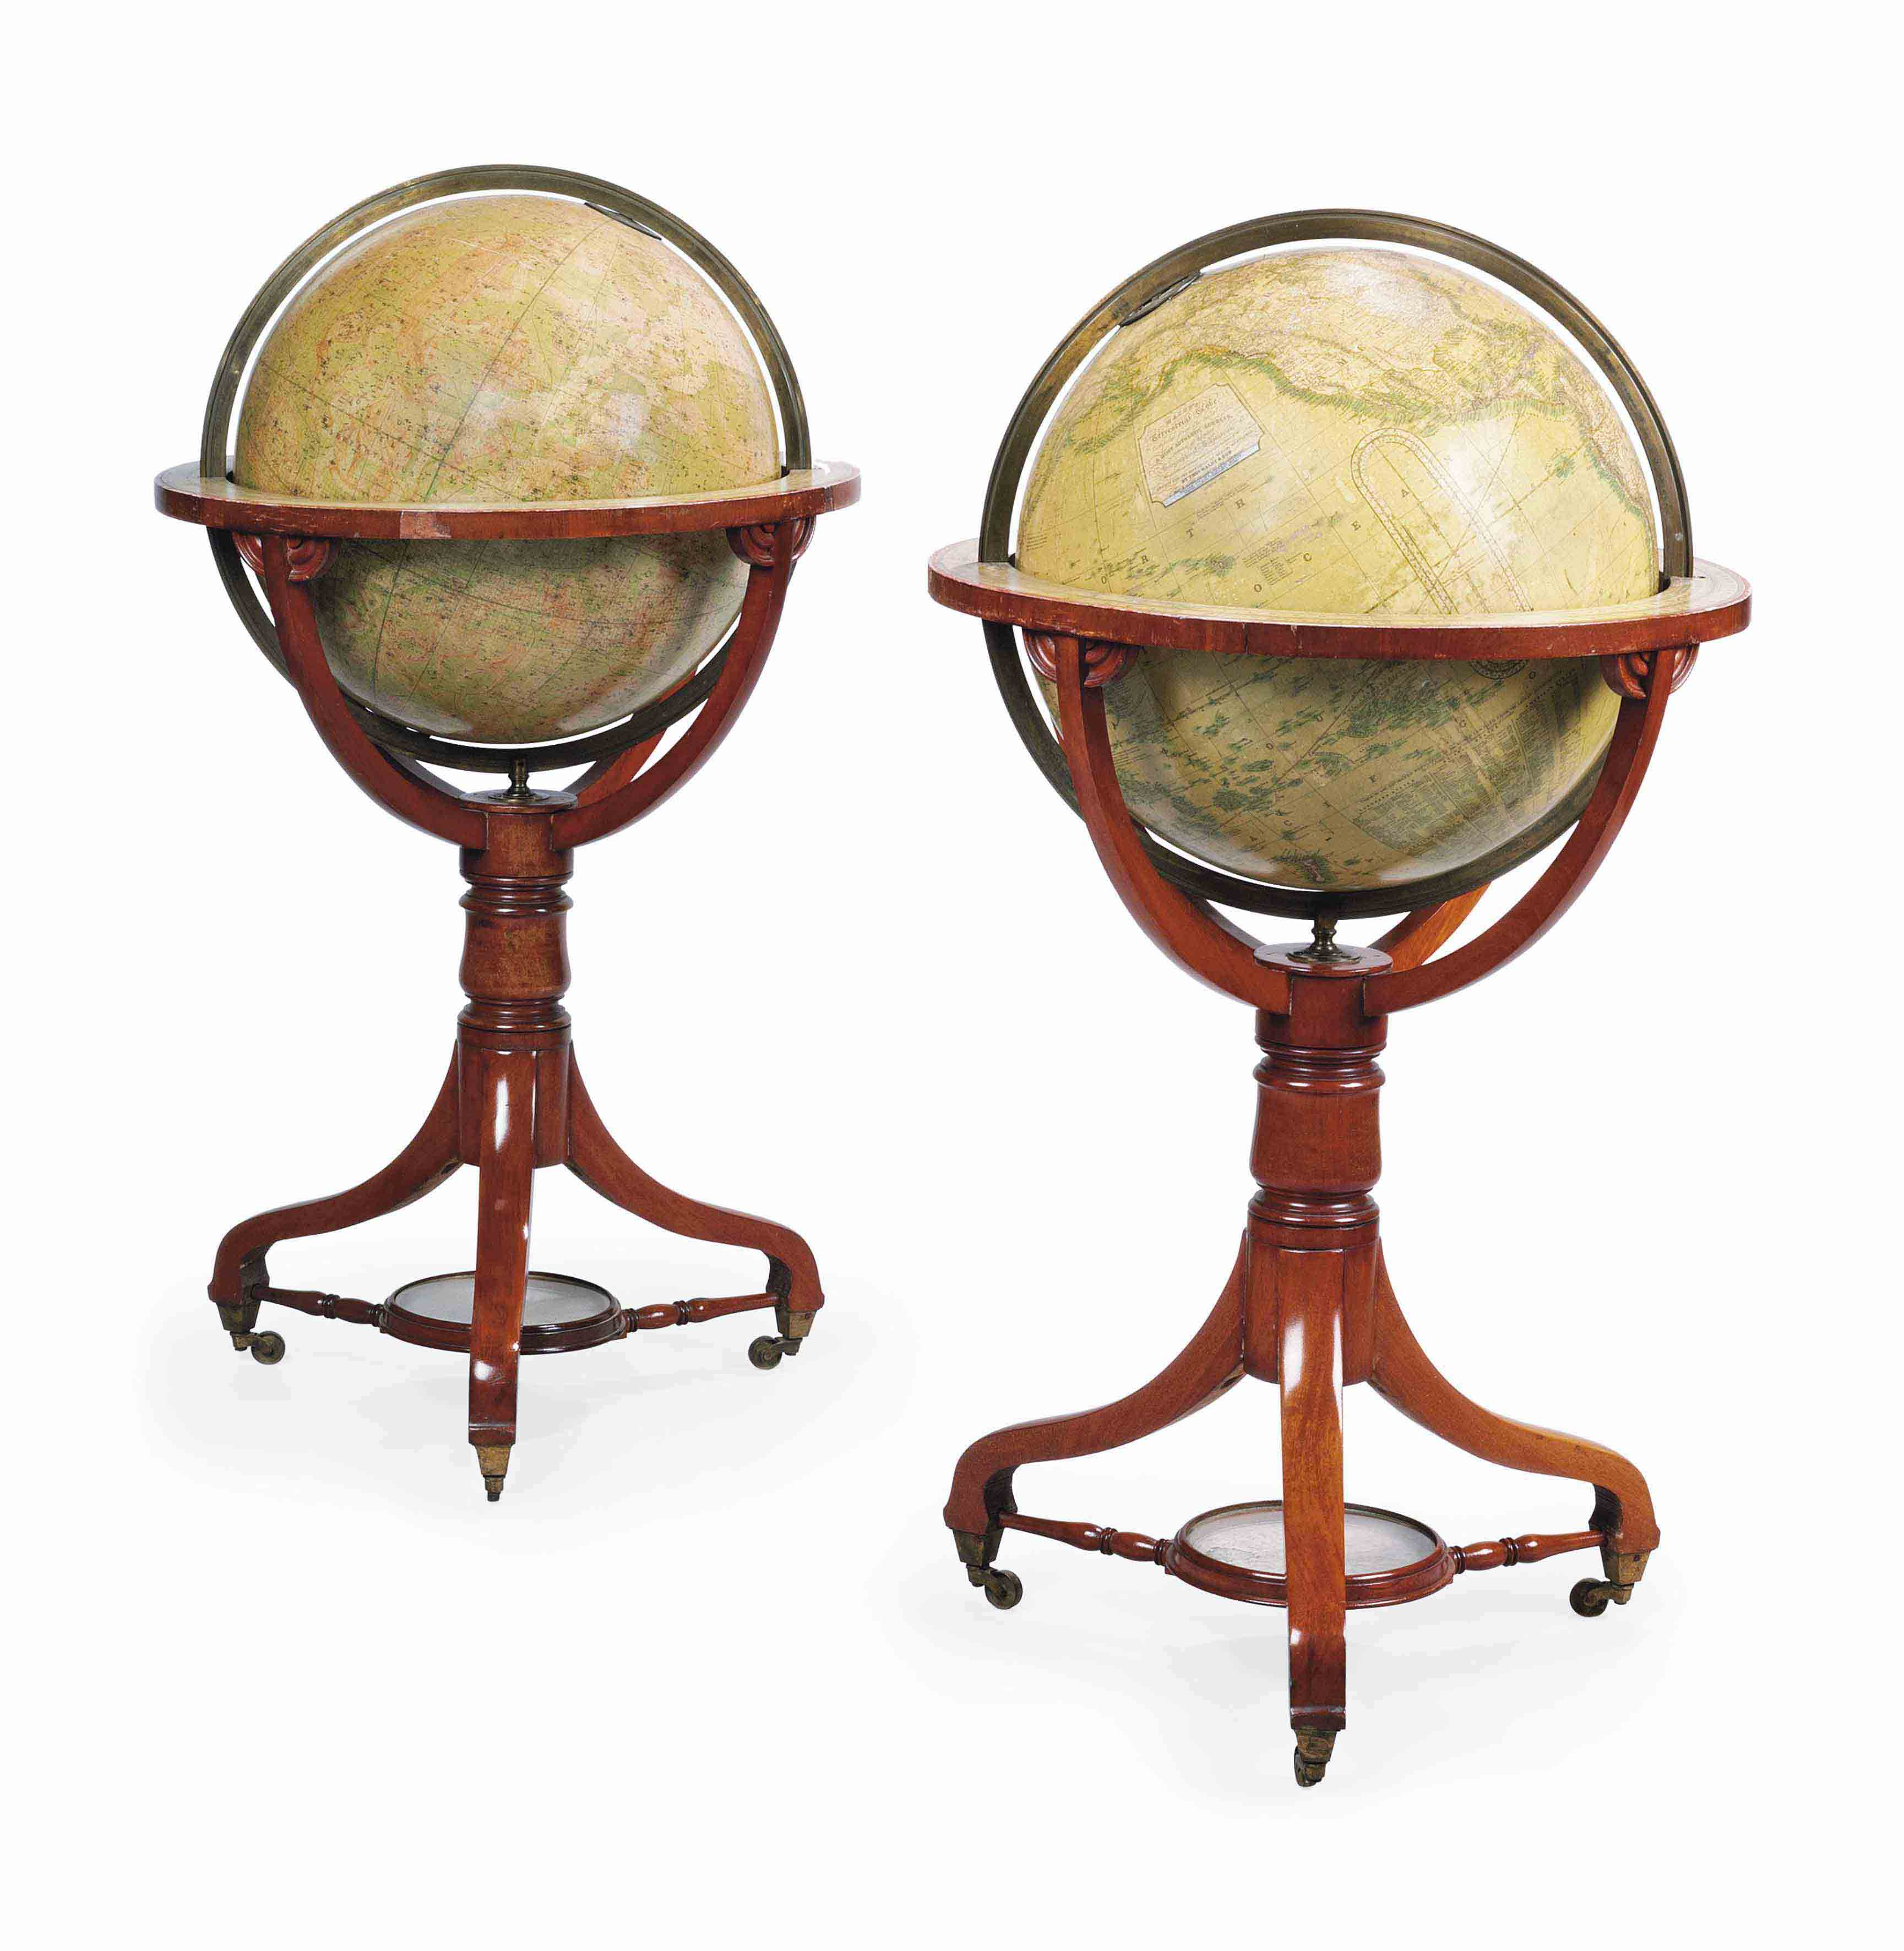 A PAIR OF VICTORIAN TERRESTRIAL AND CELESTIAL 18-INCH LIBRARY GLOBES